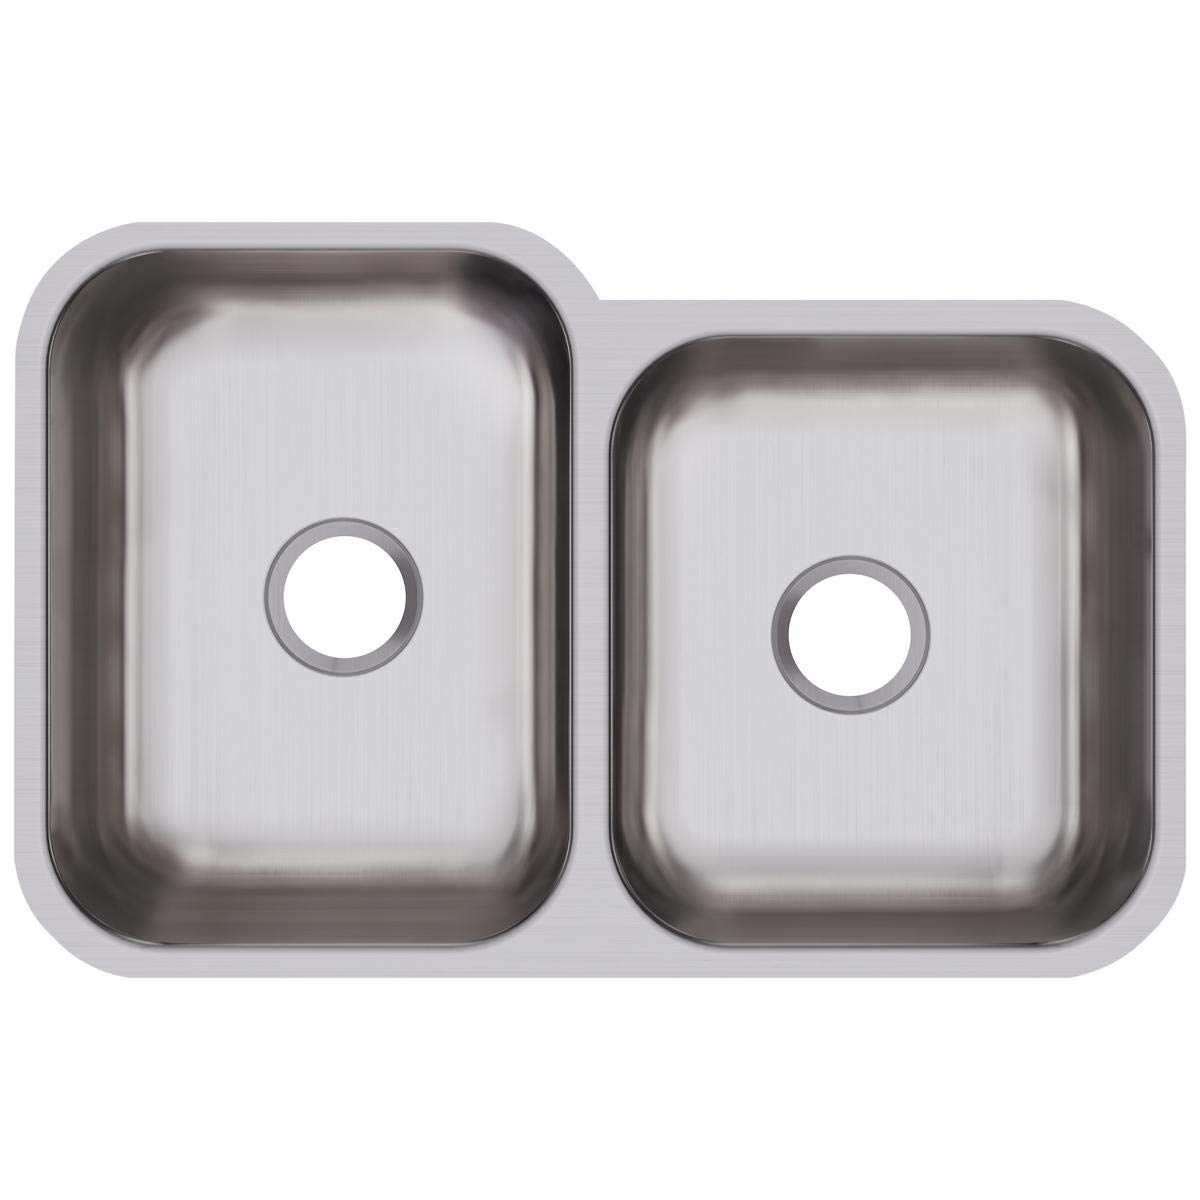 Elkay DXUH312010R Dayton Offset Double Bowl Undermount Stainless Steel Sink